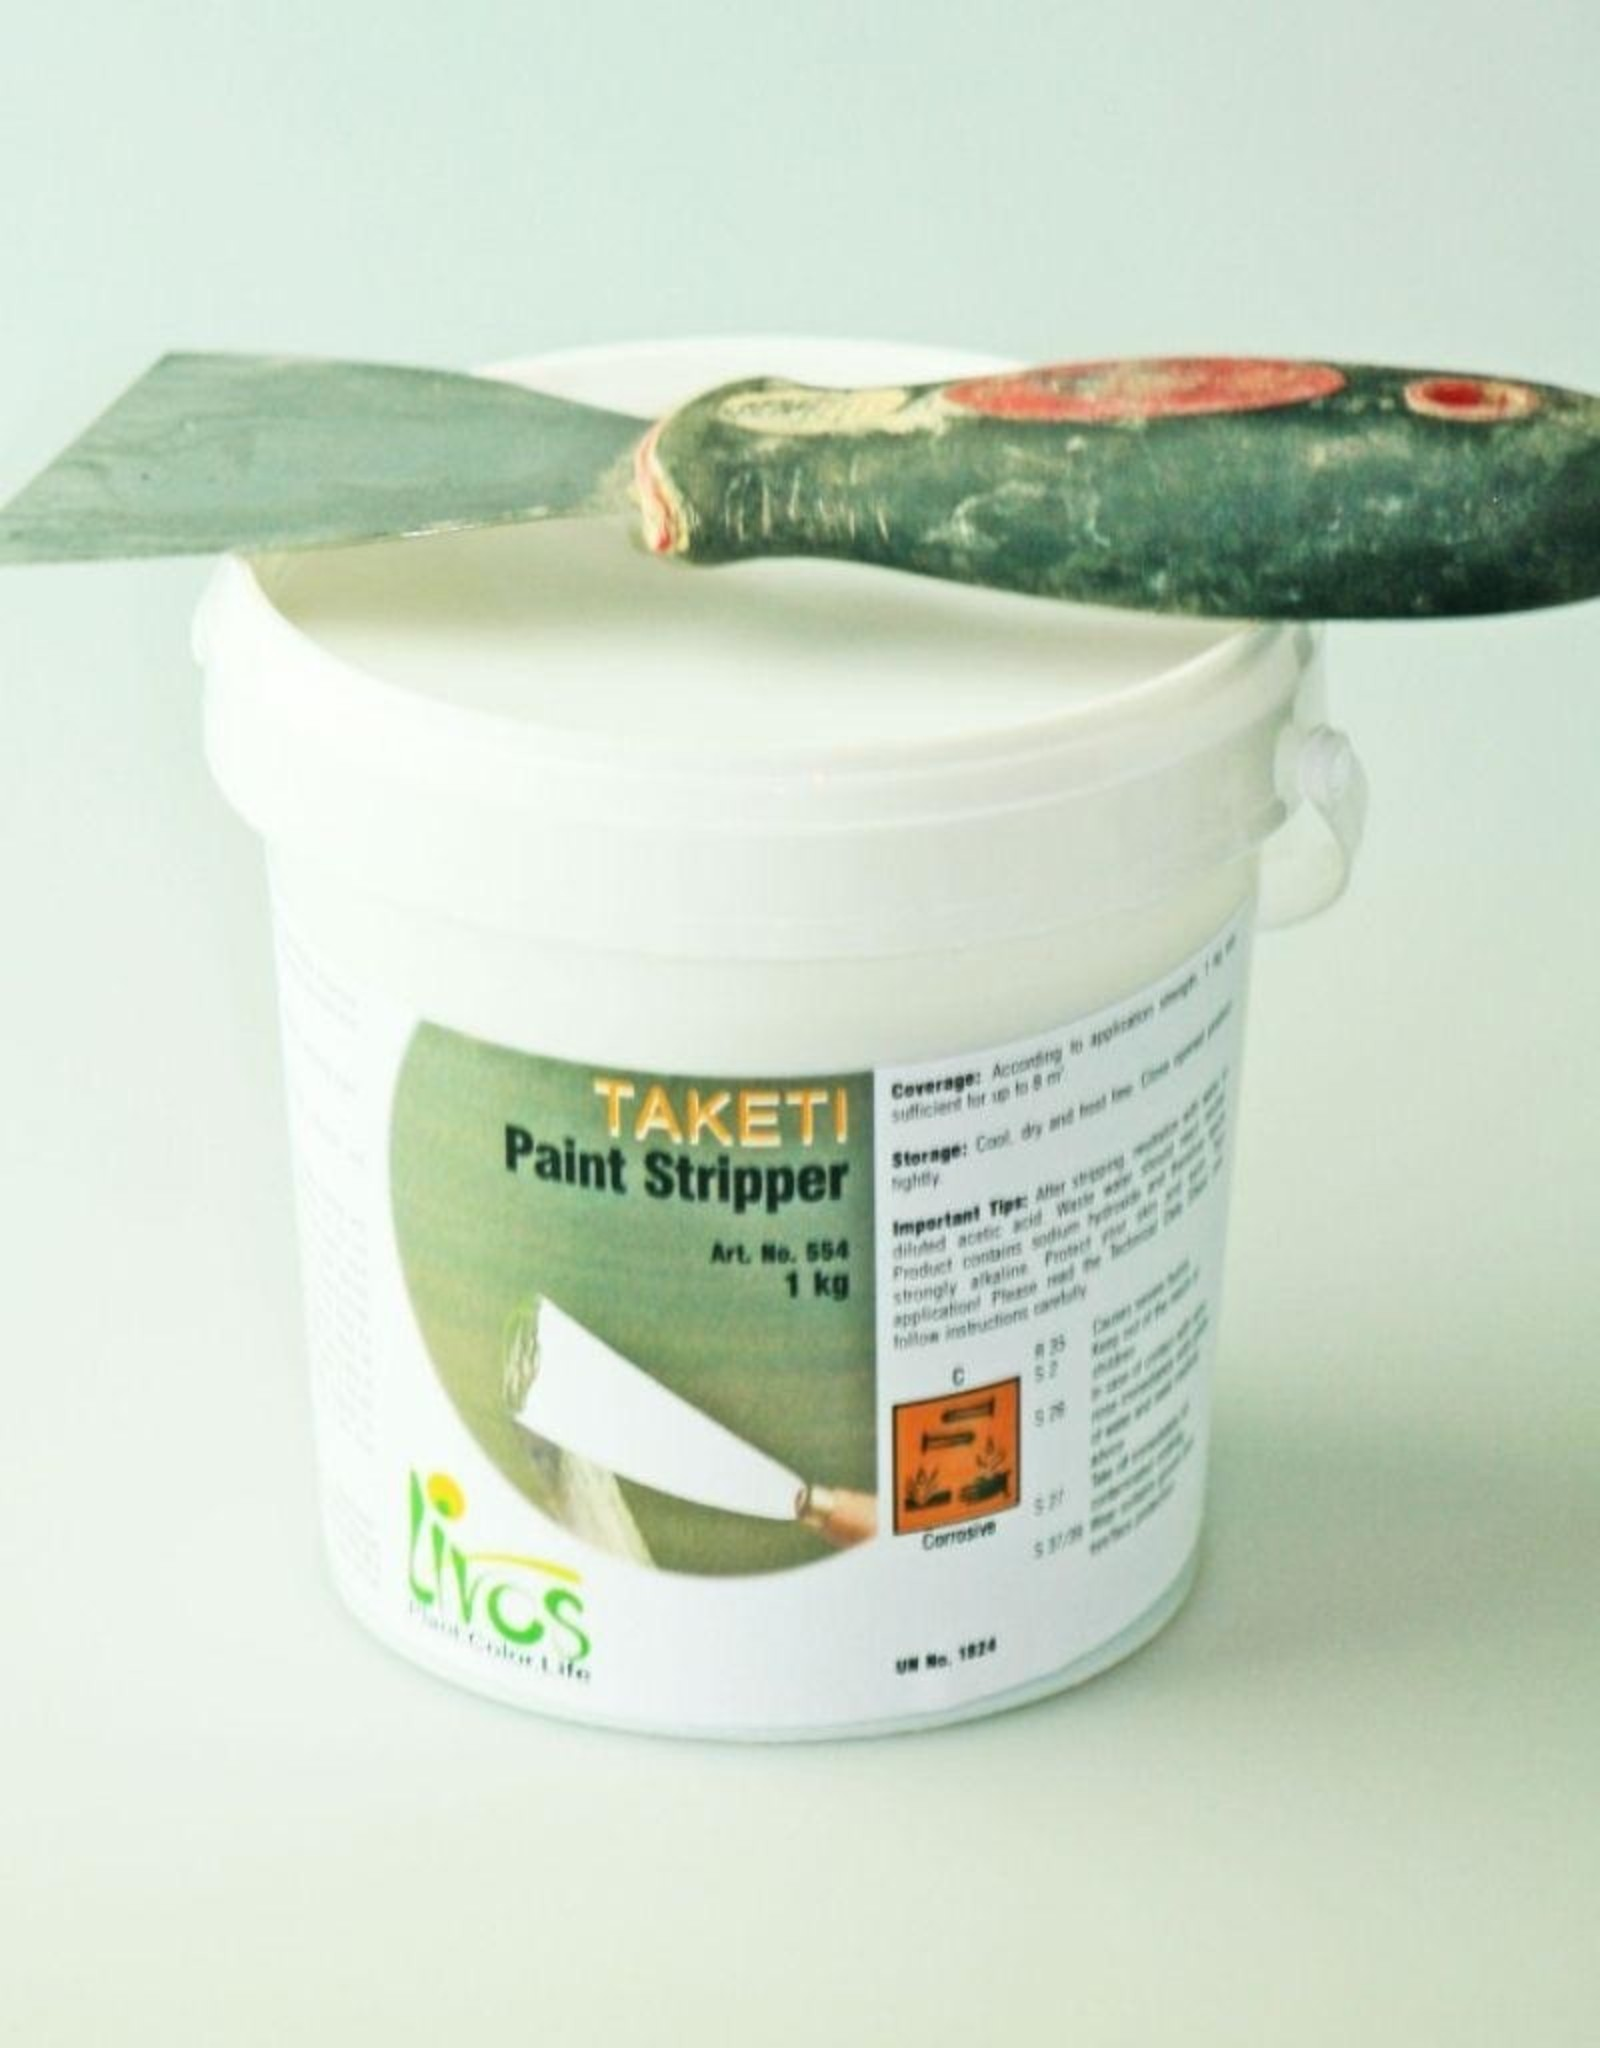 LIVOS Taketi Paint Stripper 1kg